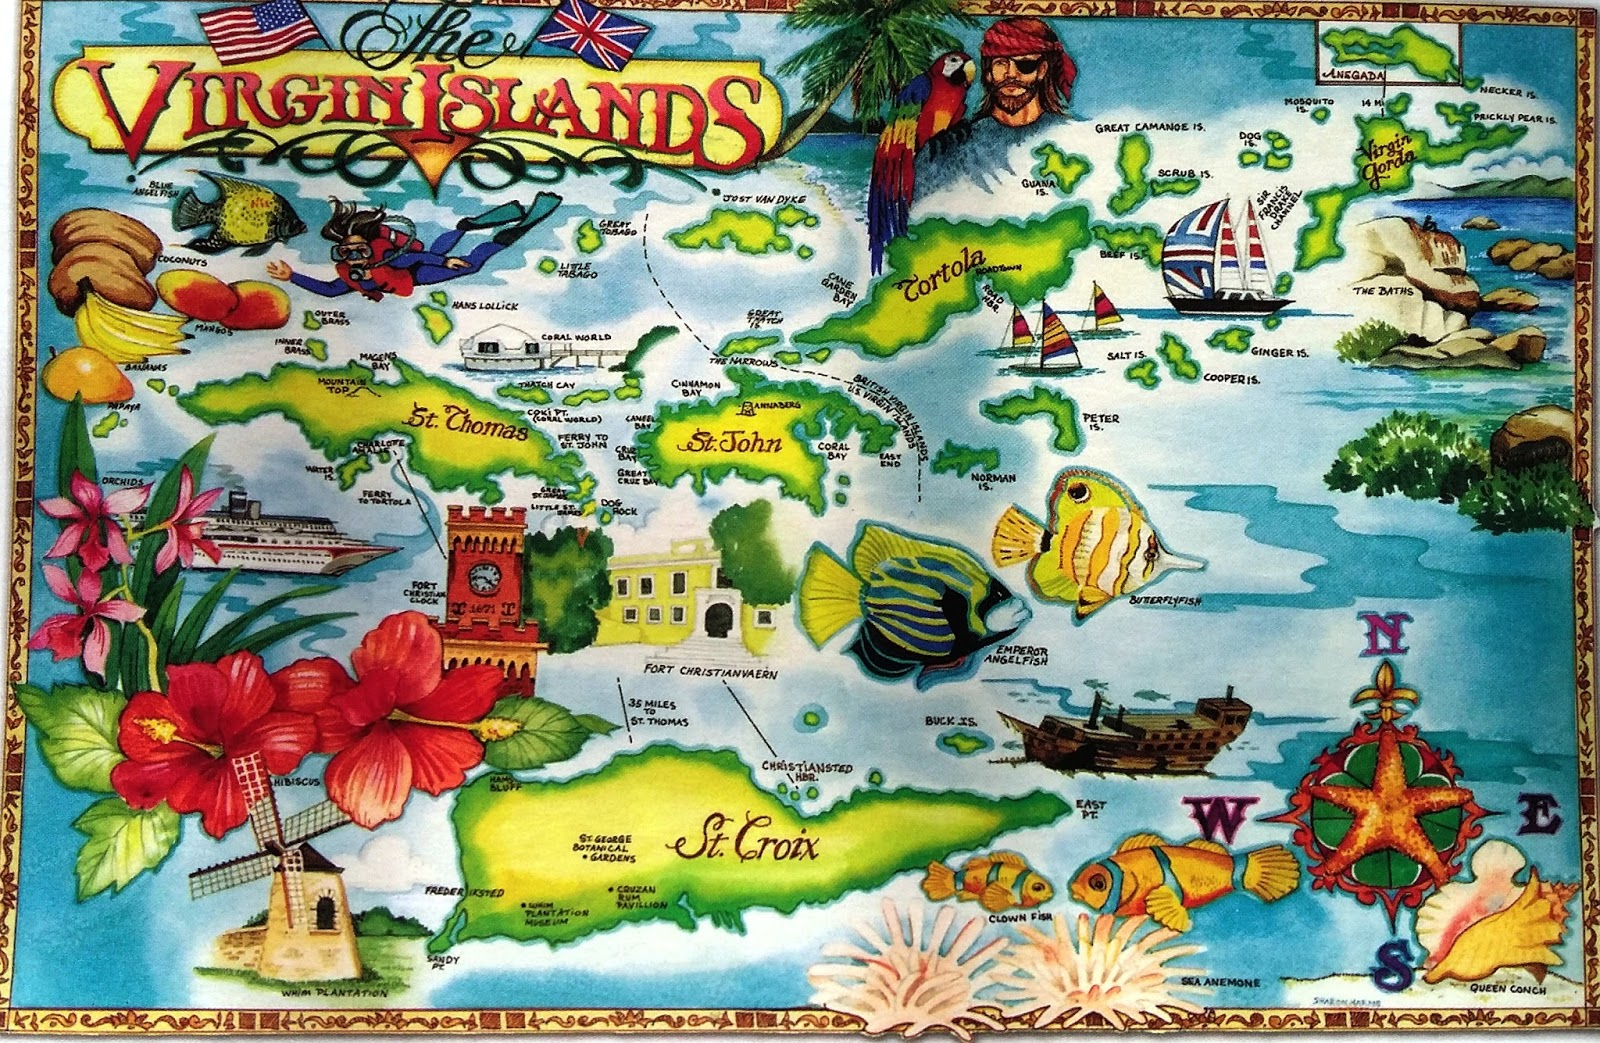 the islands make up part of the virgin islands archipelago the remaining islands constitute the u s virgin islands and the spanish virgin islands